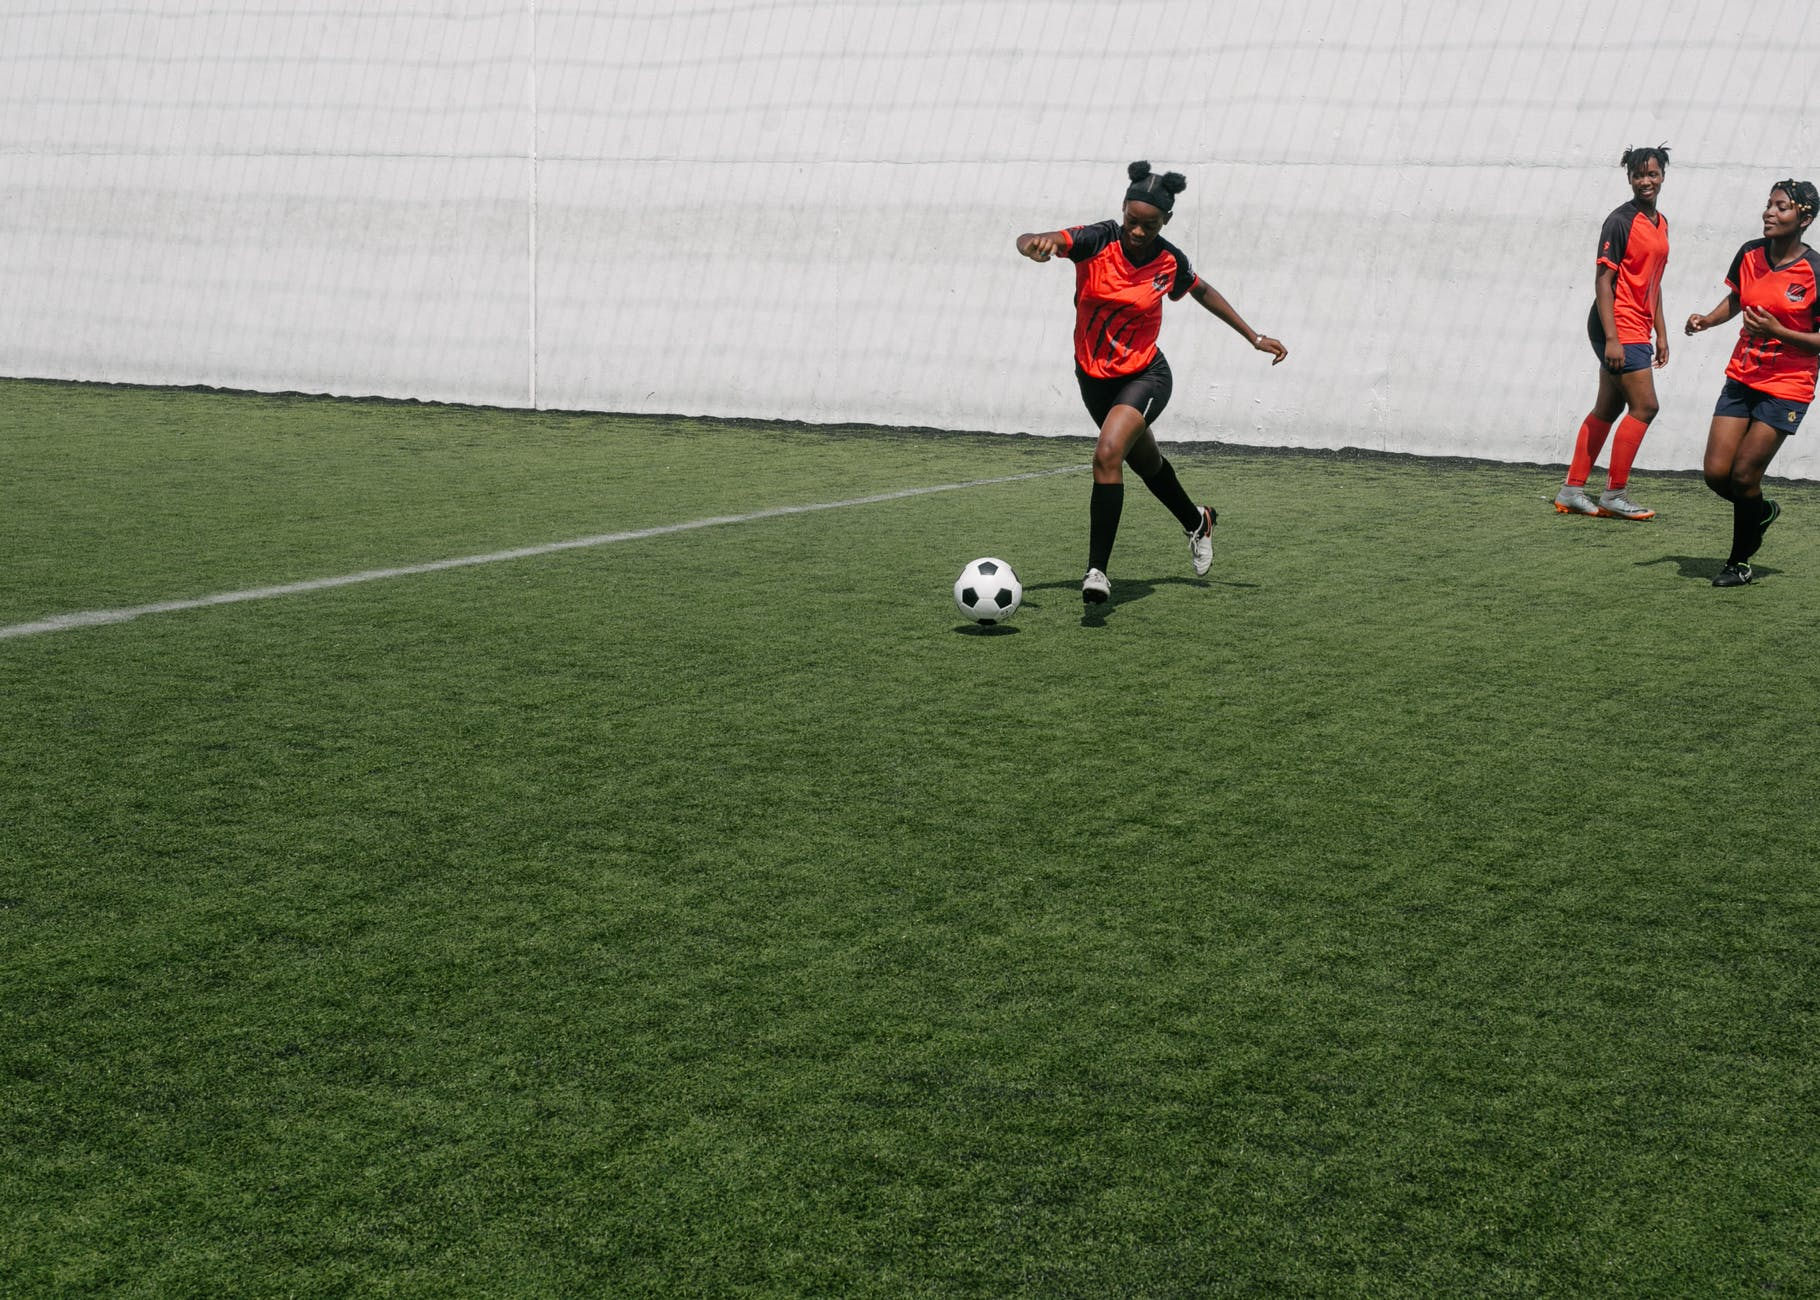 6 Ways Playing Team Sports Can Improve Your Life